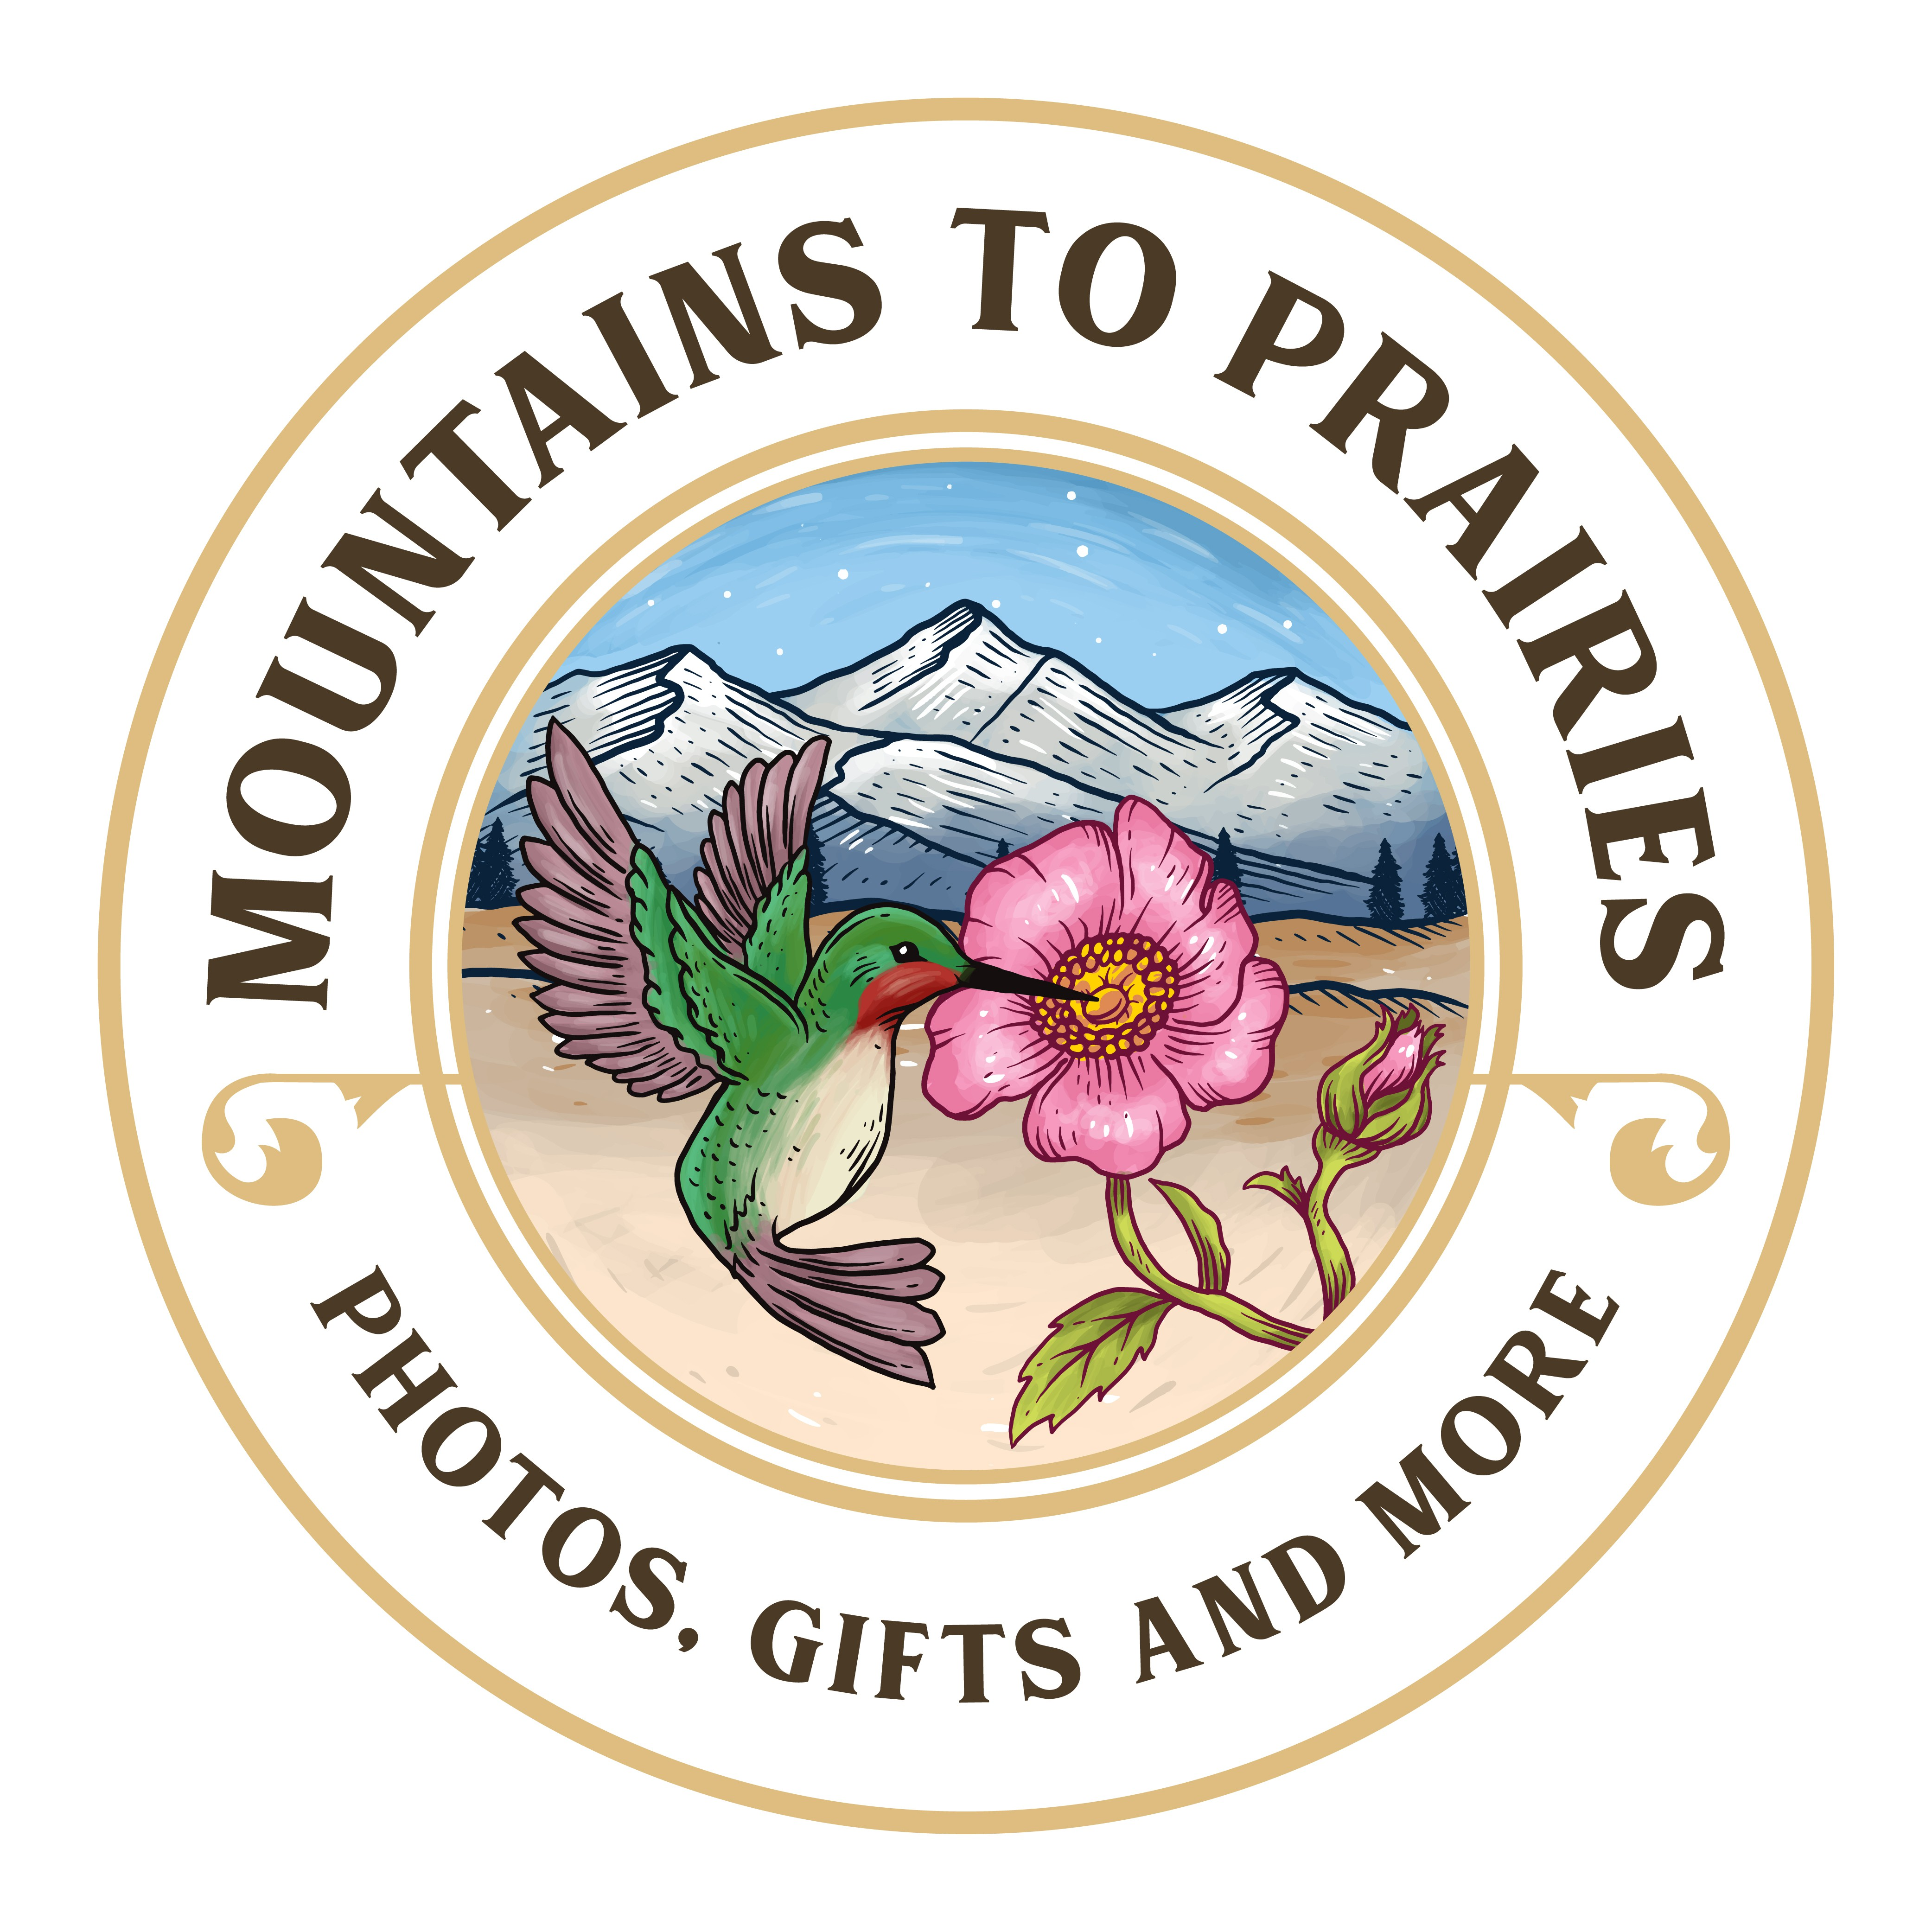 Show the beauty of God's creation in Montana & Wyoming to the world